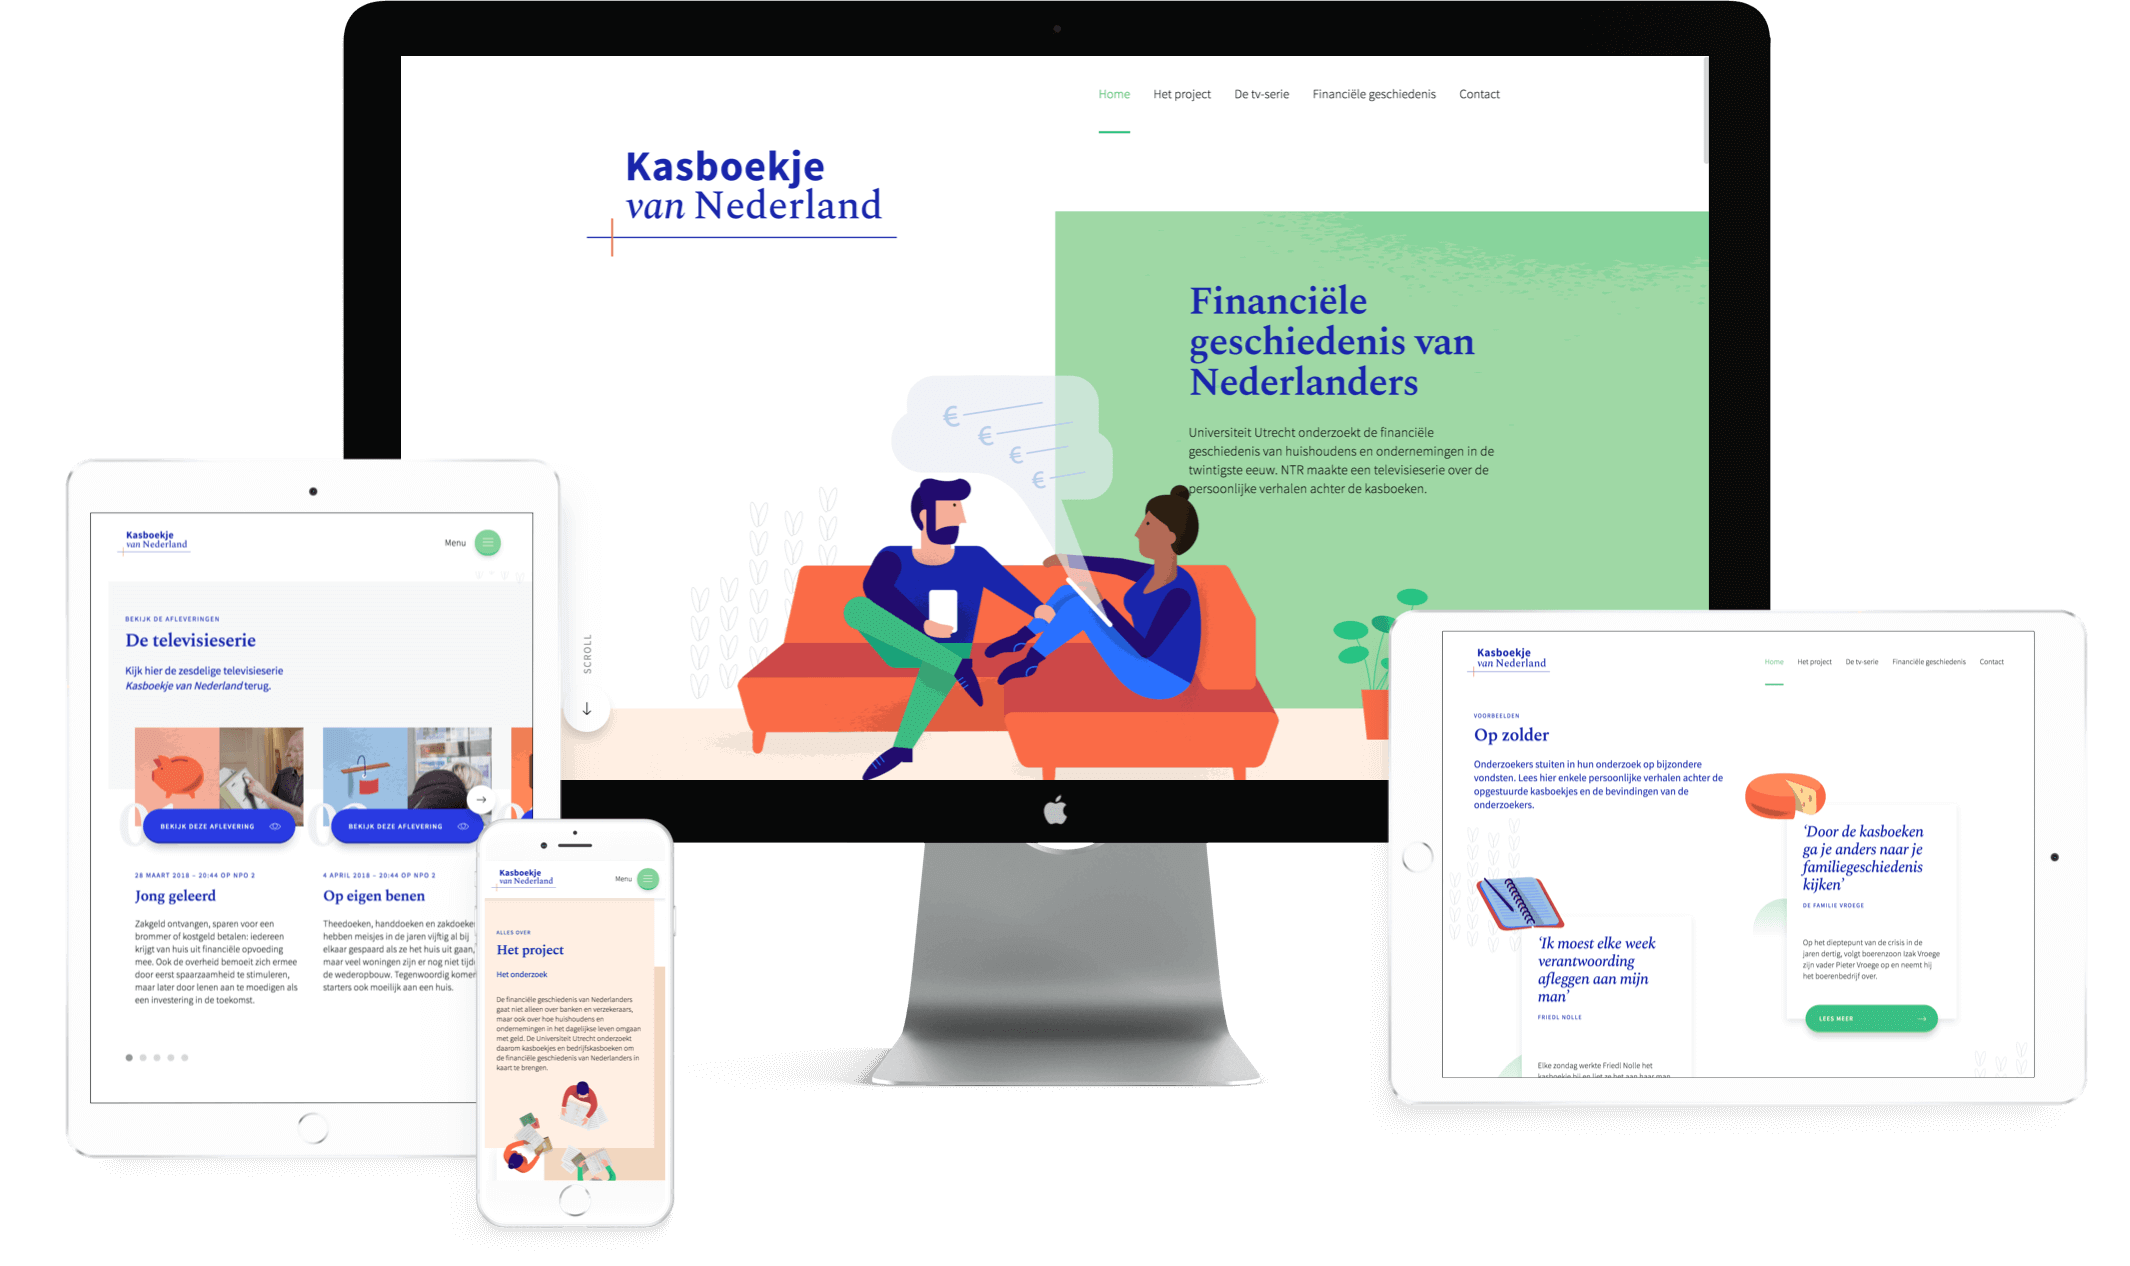 Overview of tablet, mobile and desktop view of Kasboekje website